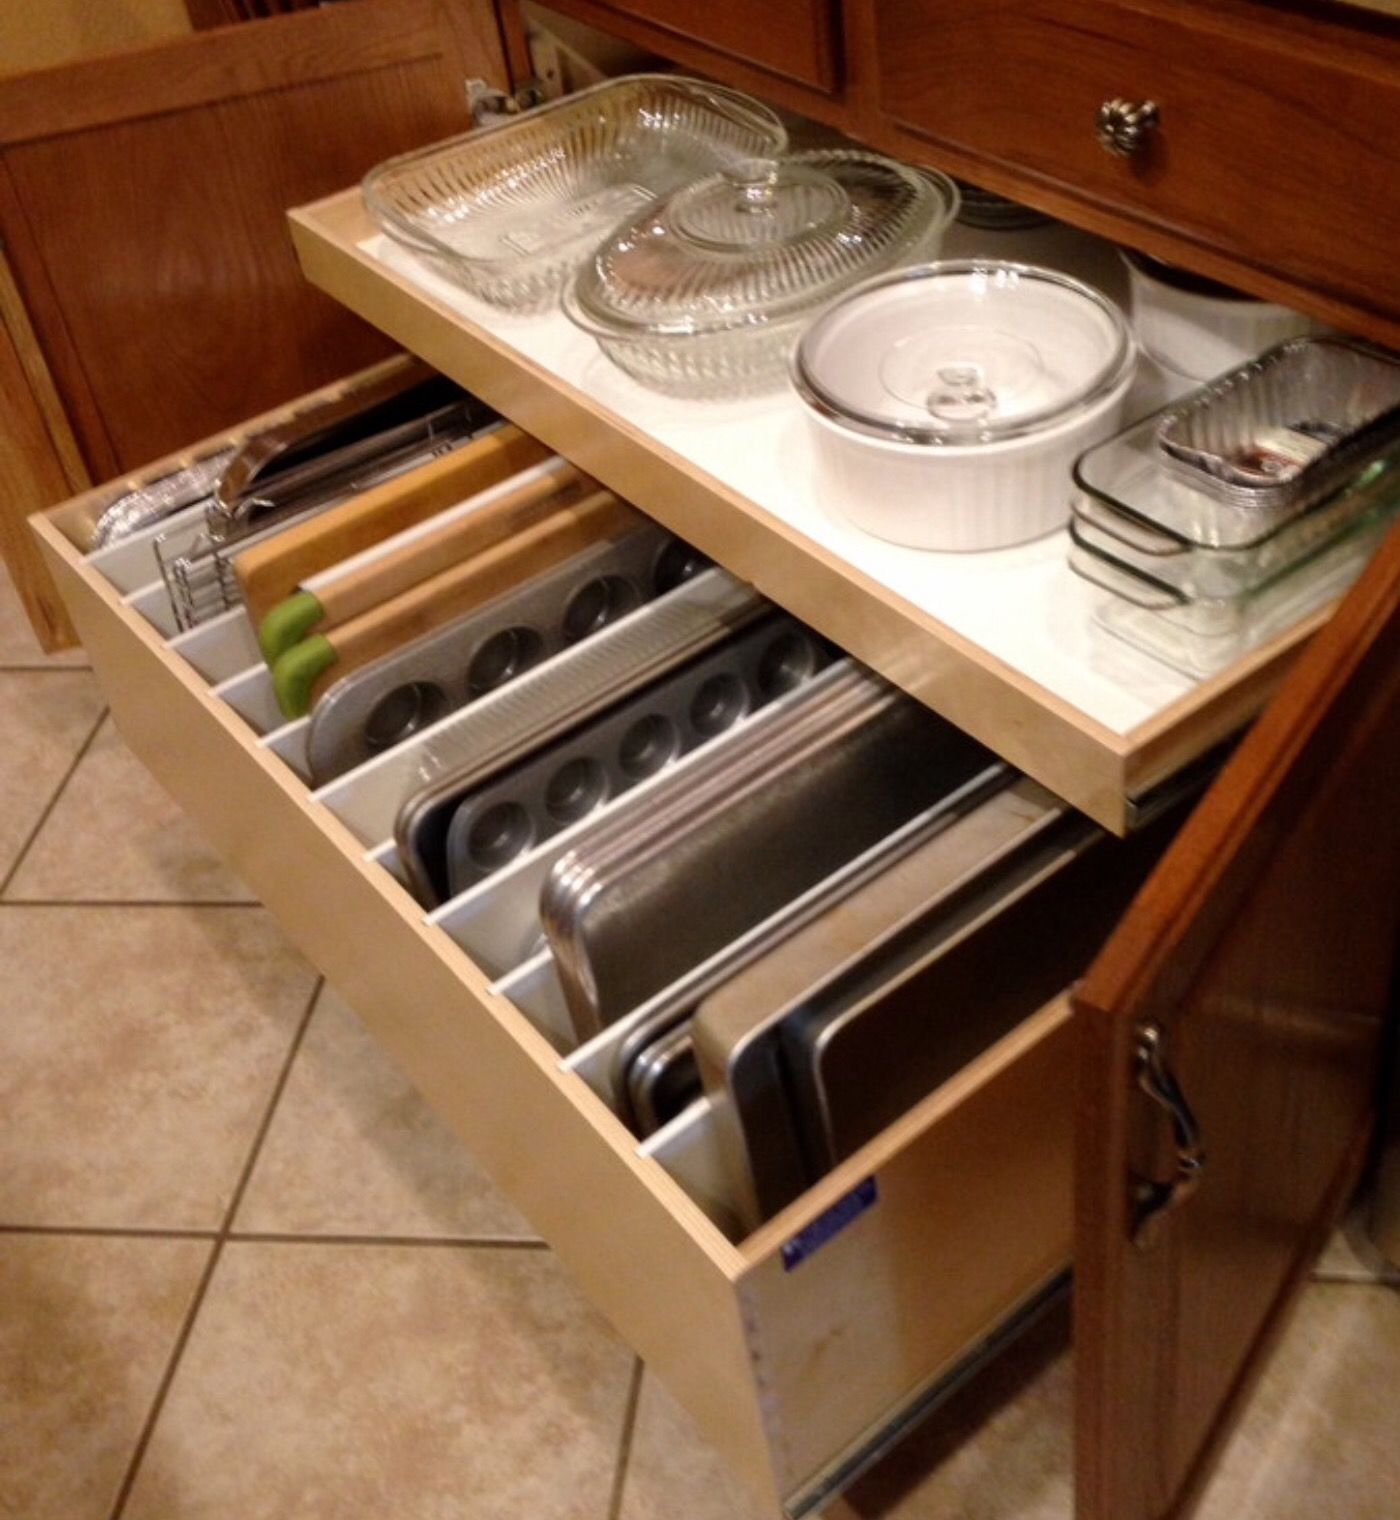 Kitchen #cabinet #drawer #layout | Kitchens | Pinterest | Cabinets on kitchen wine storage, kitchen tea storage, kitchen fruit storage, kitchen flour storage, kitchen can goods storage, kitchen christmas storage, kitchen coffee storage, kitchen sugar storage, kitchen spices storage, kitchen recipe storage, kitchen furniture storage, kitchen design storage, kitchen salad storage, kitchen meat storage, kitchen canned goods storage, kitchen food storage, kitchen cereal storage, kitchen diy storage,